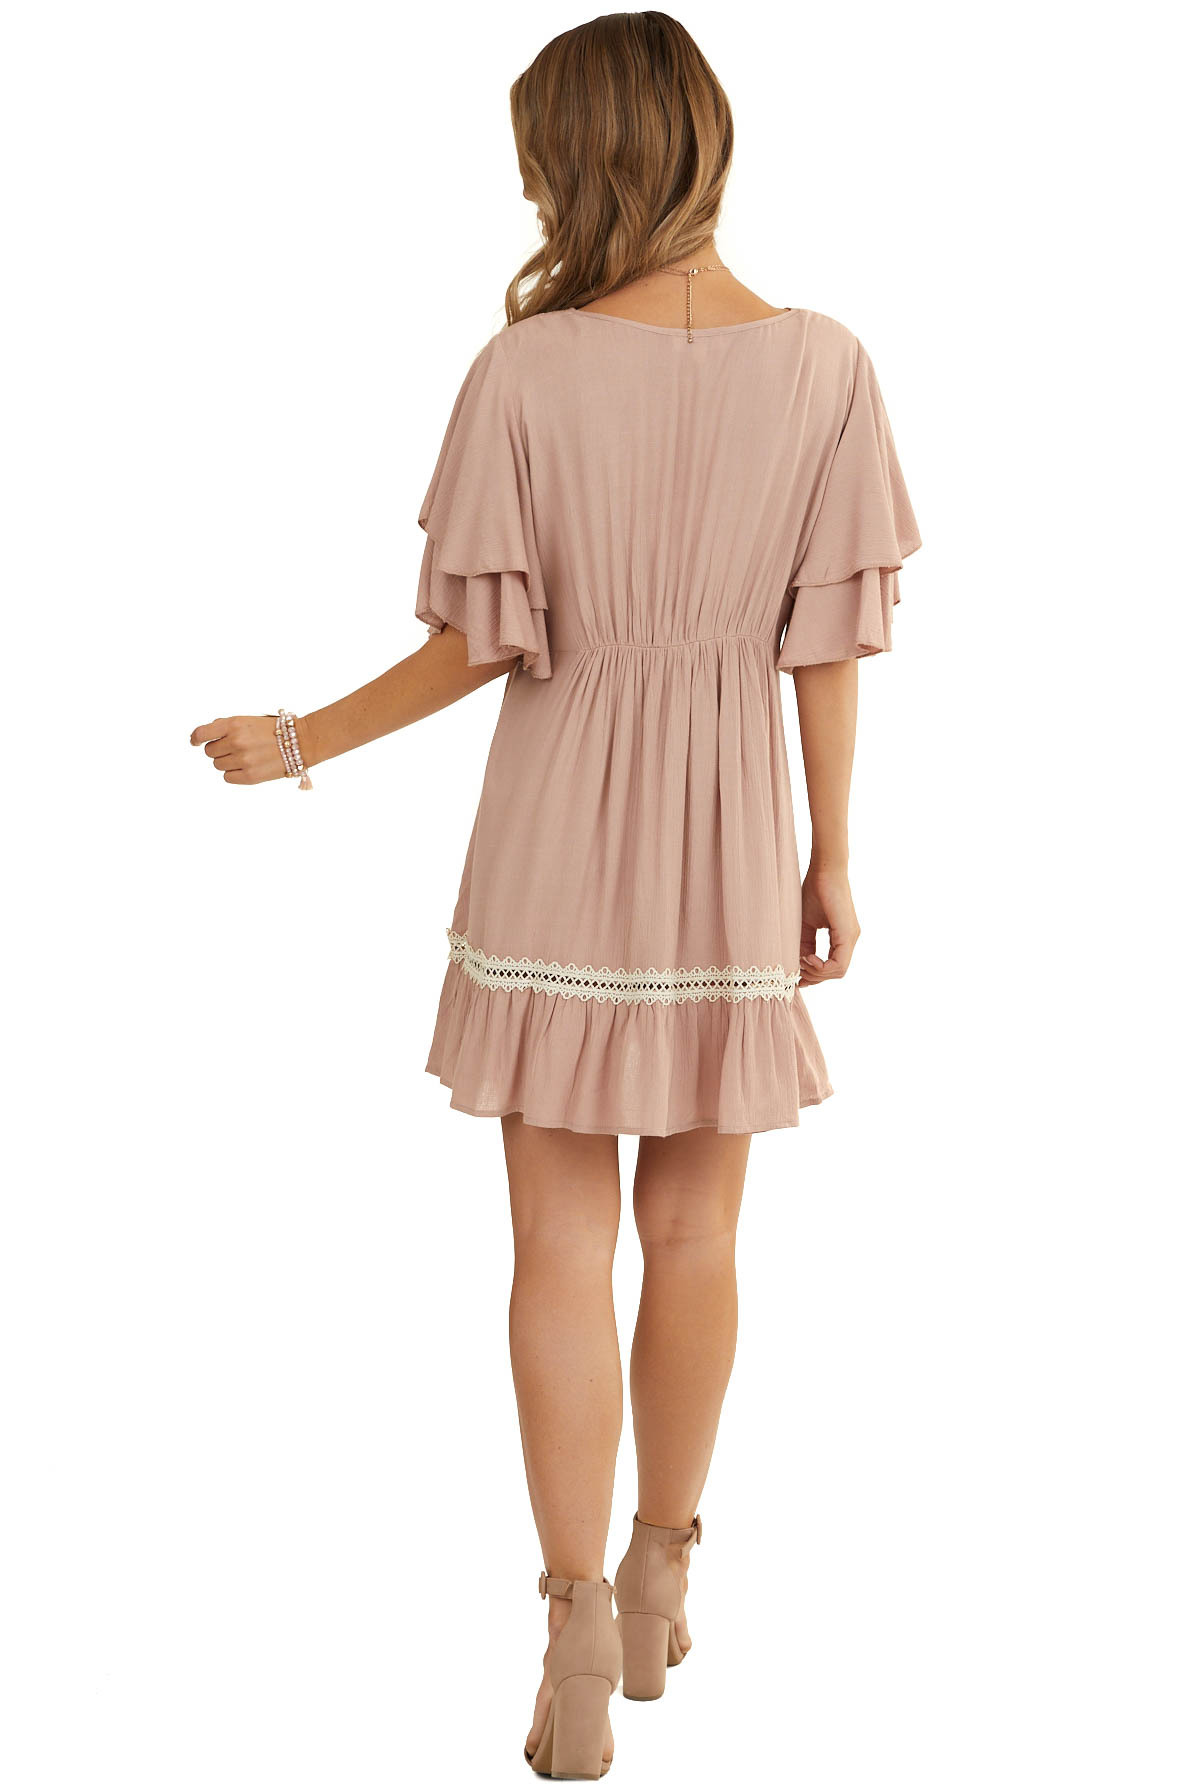 Latte Dress with Short Ruffled Sleeves and Lace Details